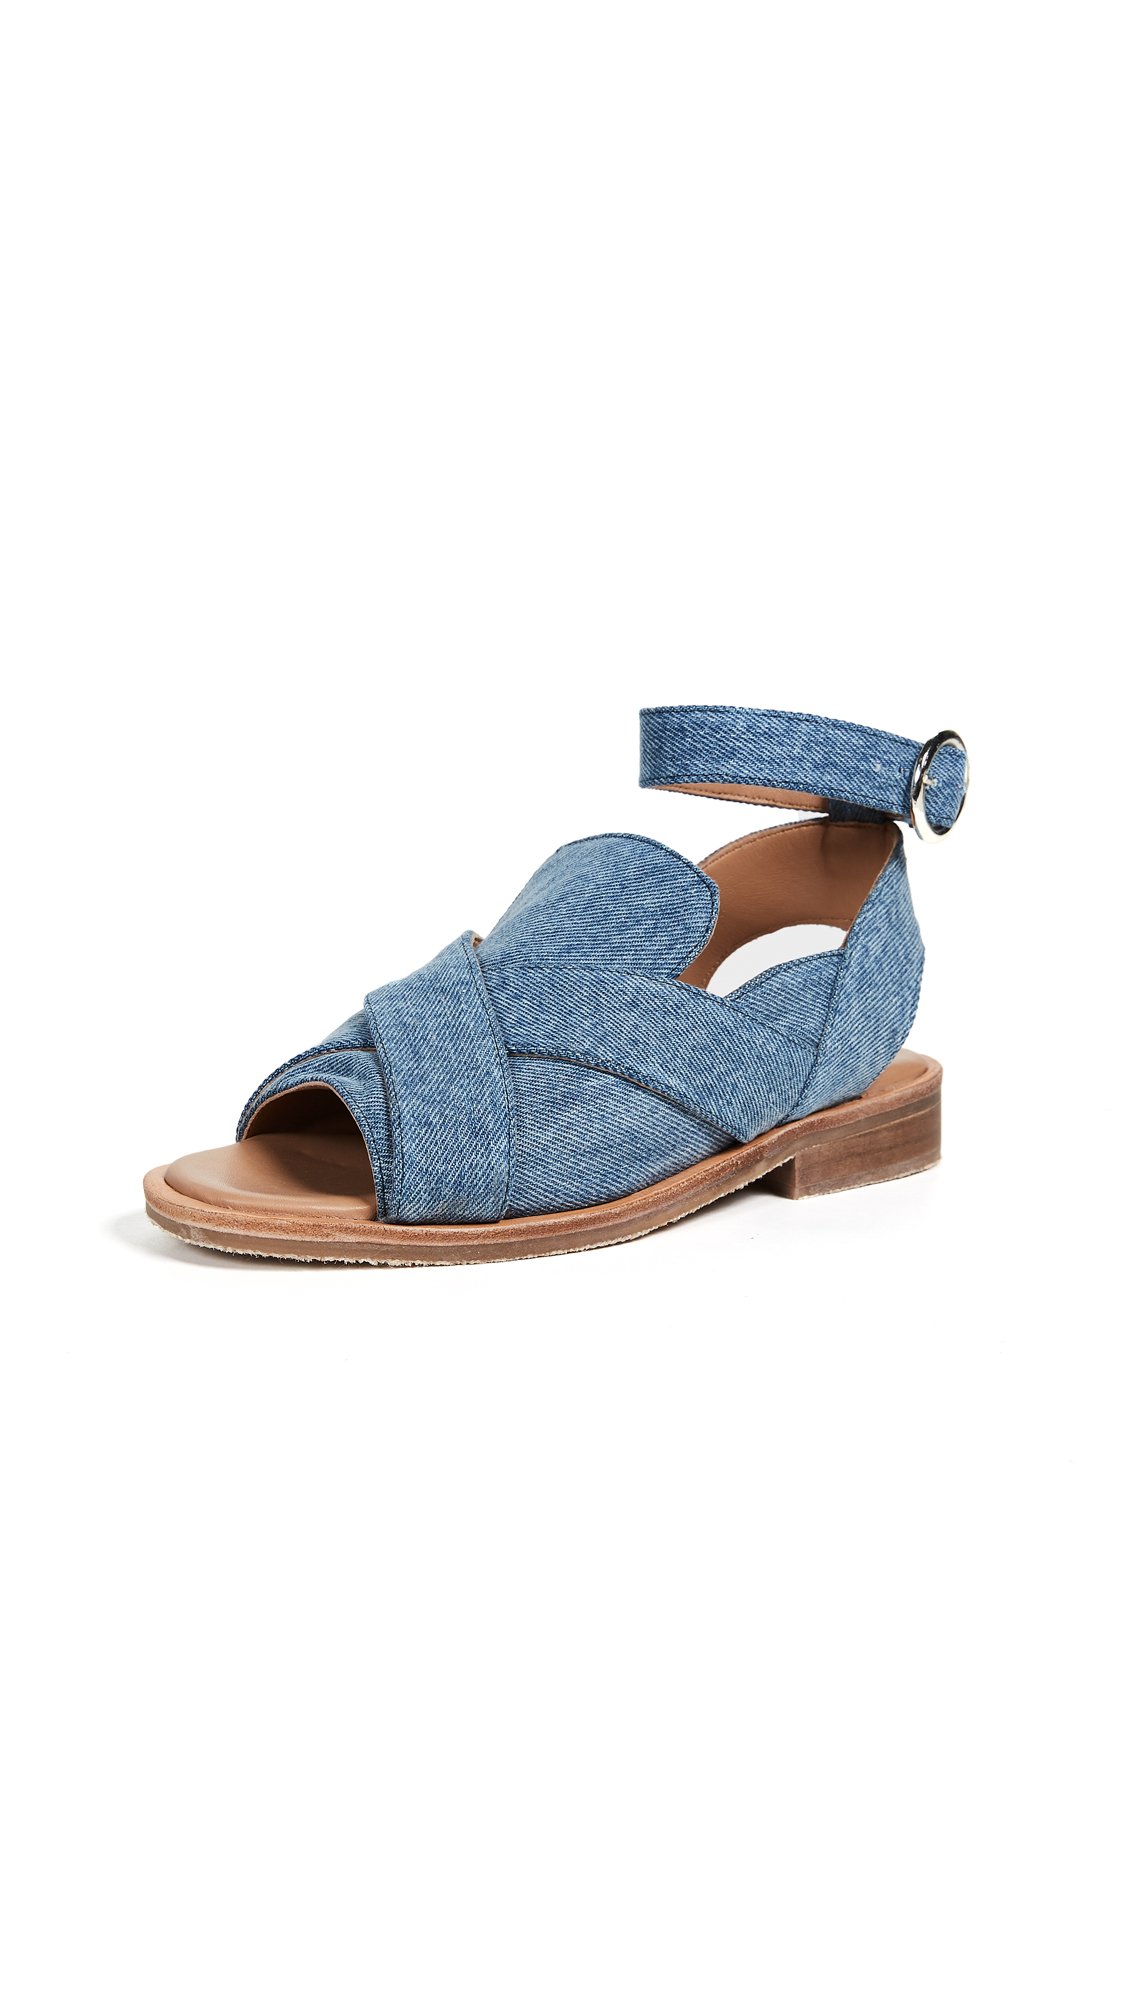 Free People Denim Catherine Loafer Sandals